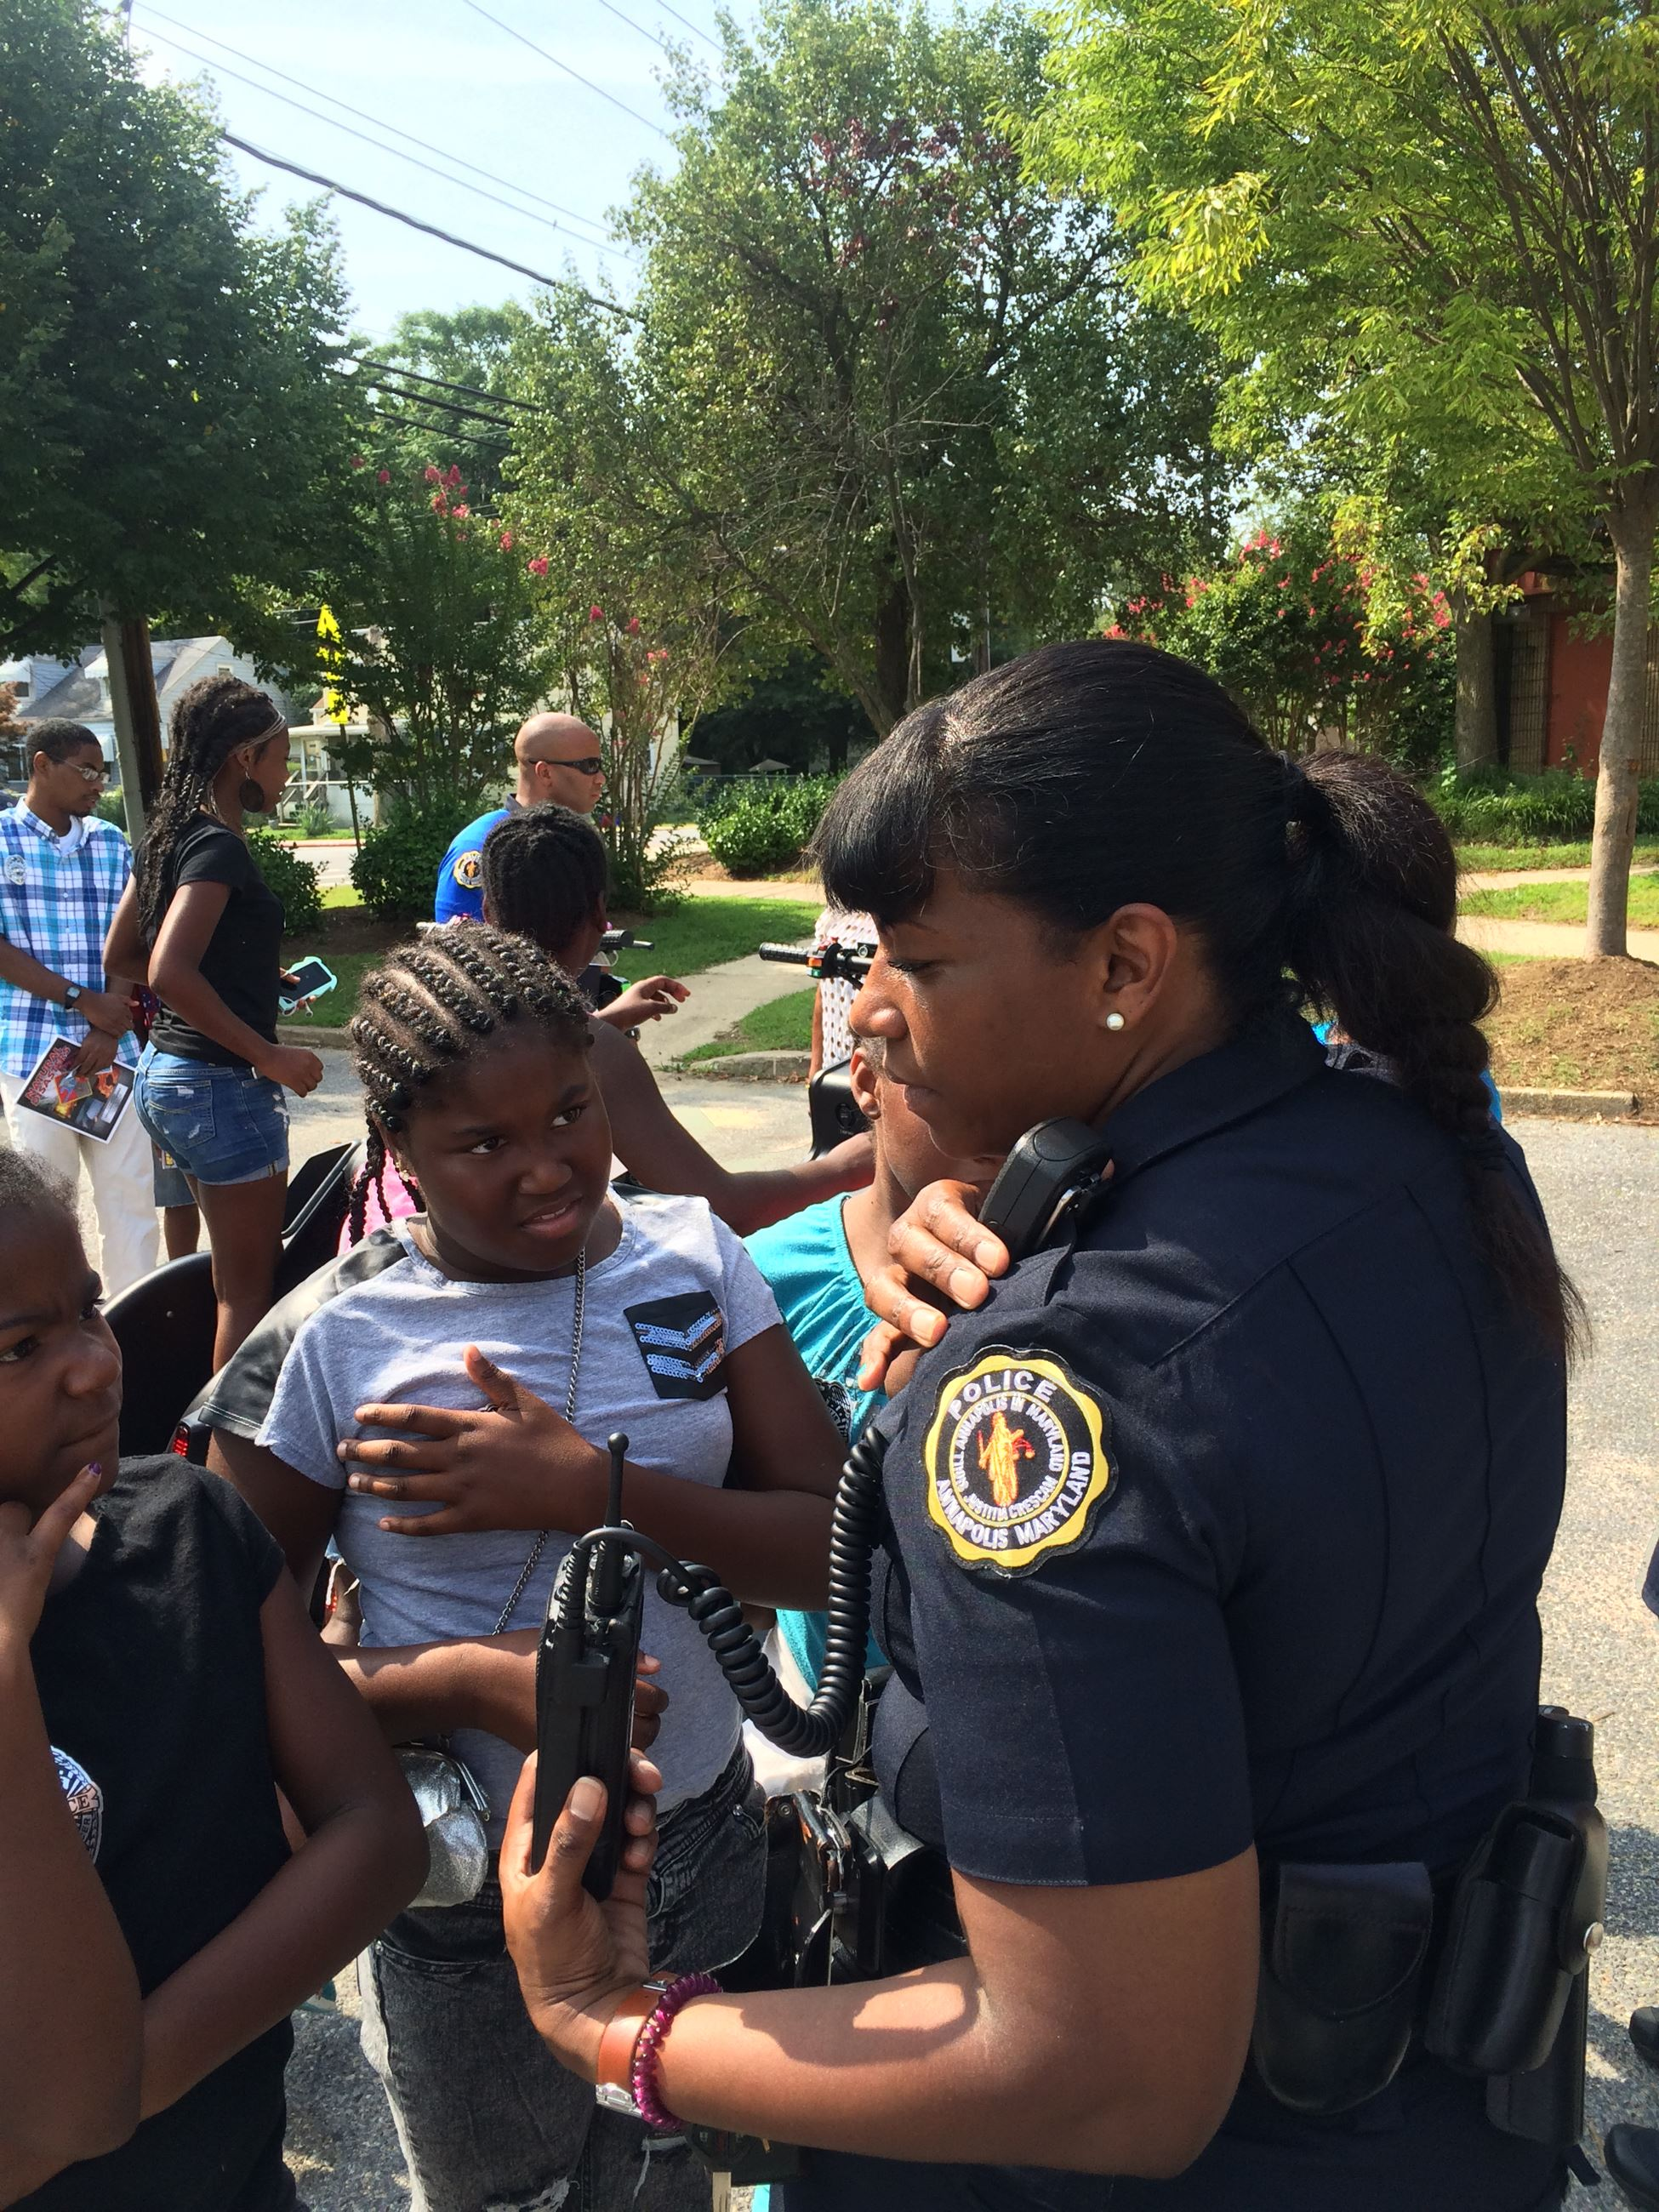 Officer answering children's questions at a community event.